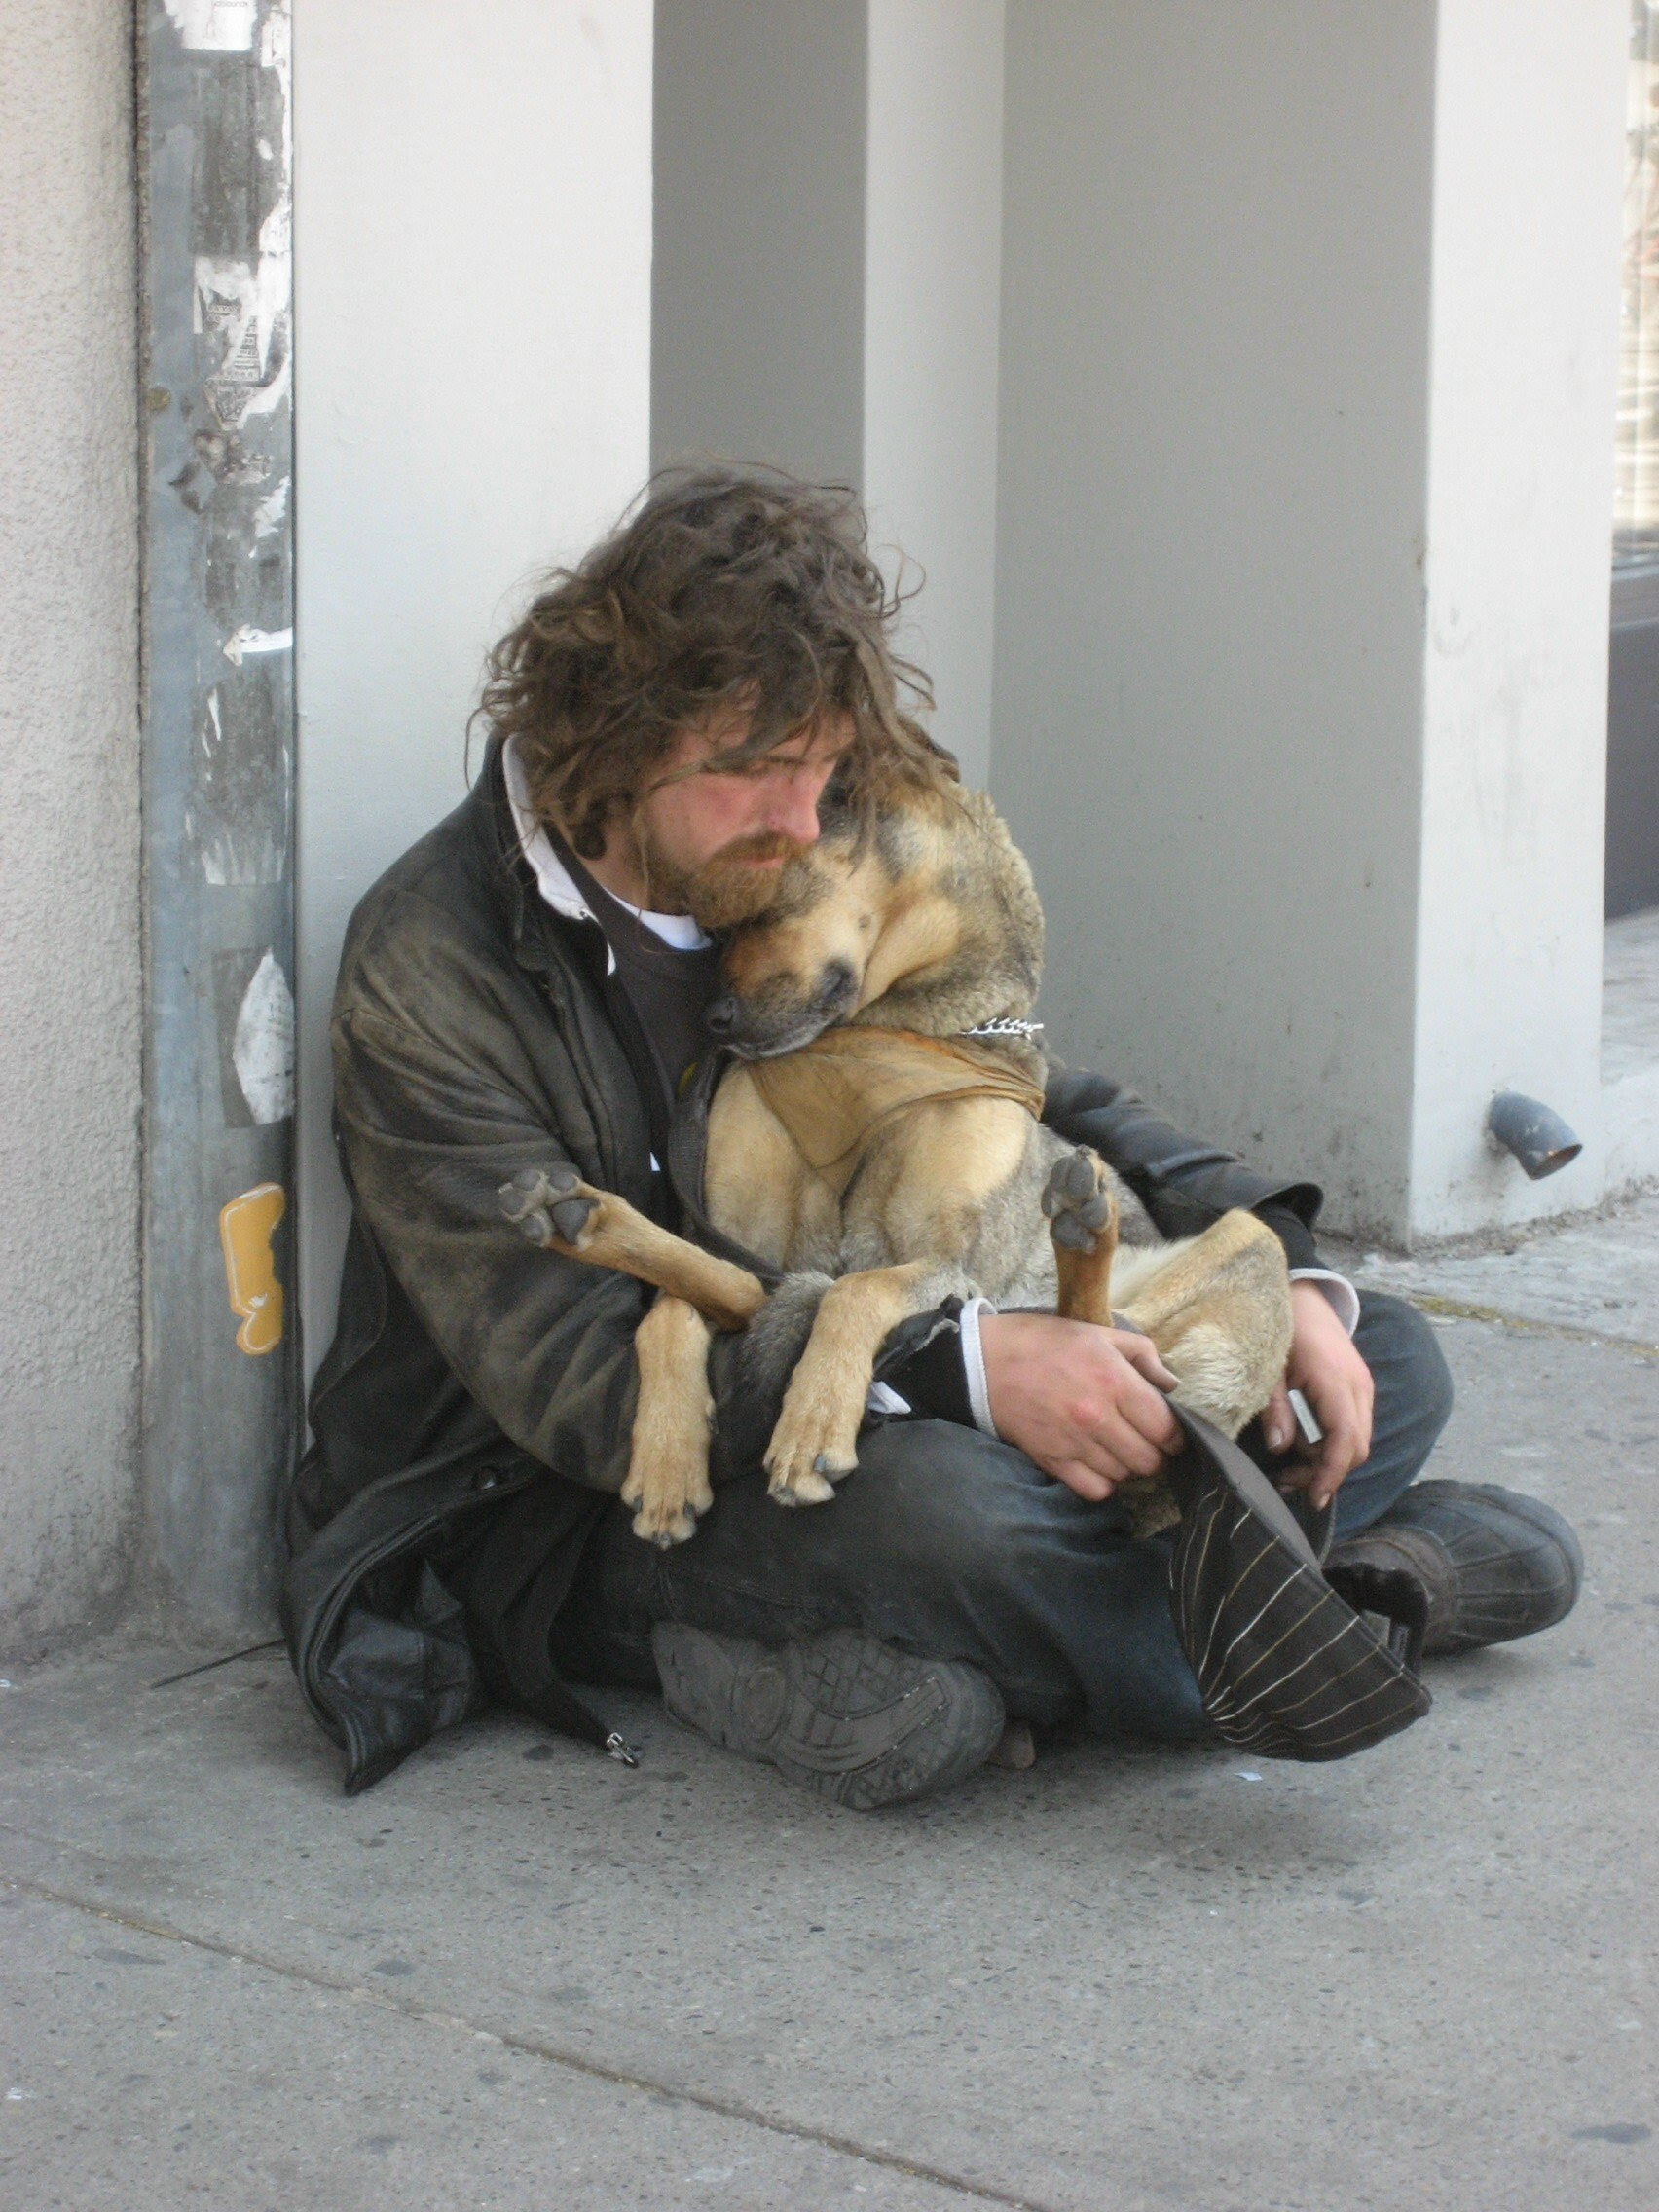 http://rebirth22.files.wordpress.com/2007/06/homeless-cuddling-dog-by-kirsten-bole-100-dpi.jpg